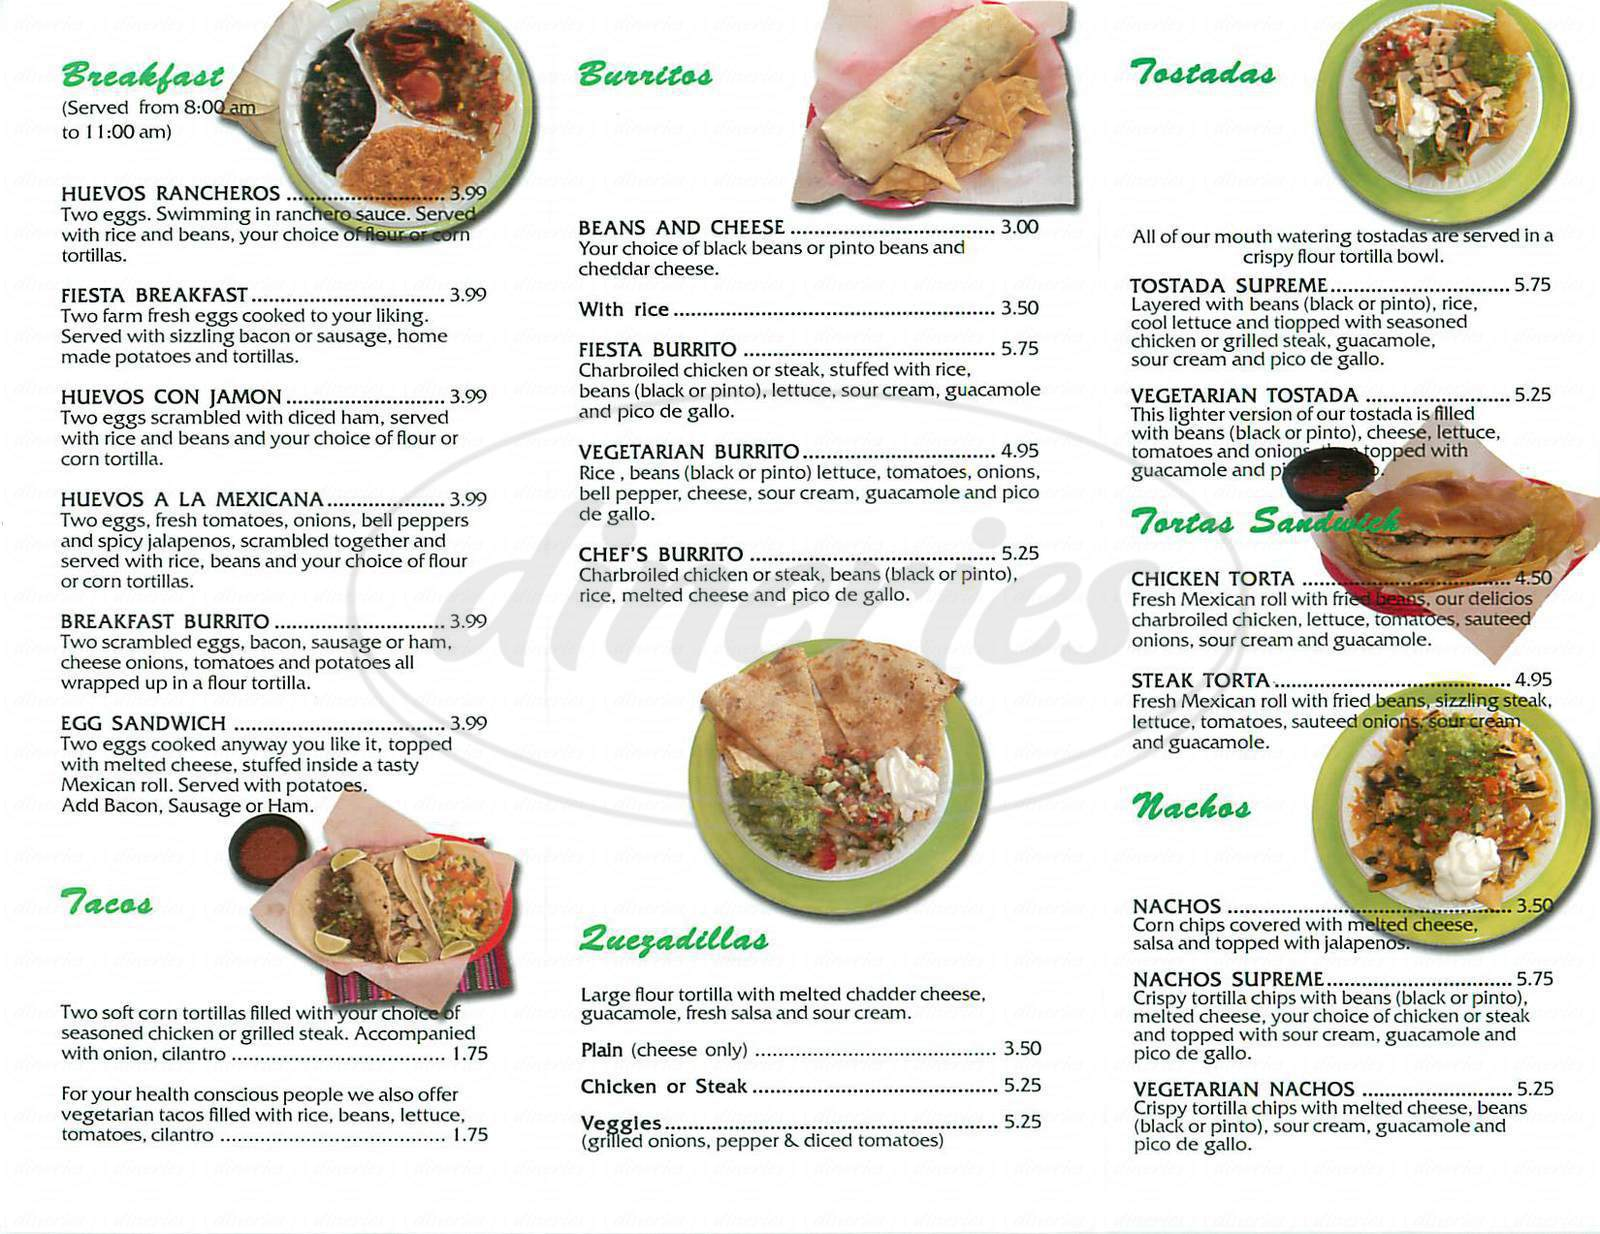 menu for La Fiesta Grill